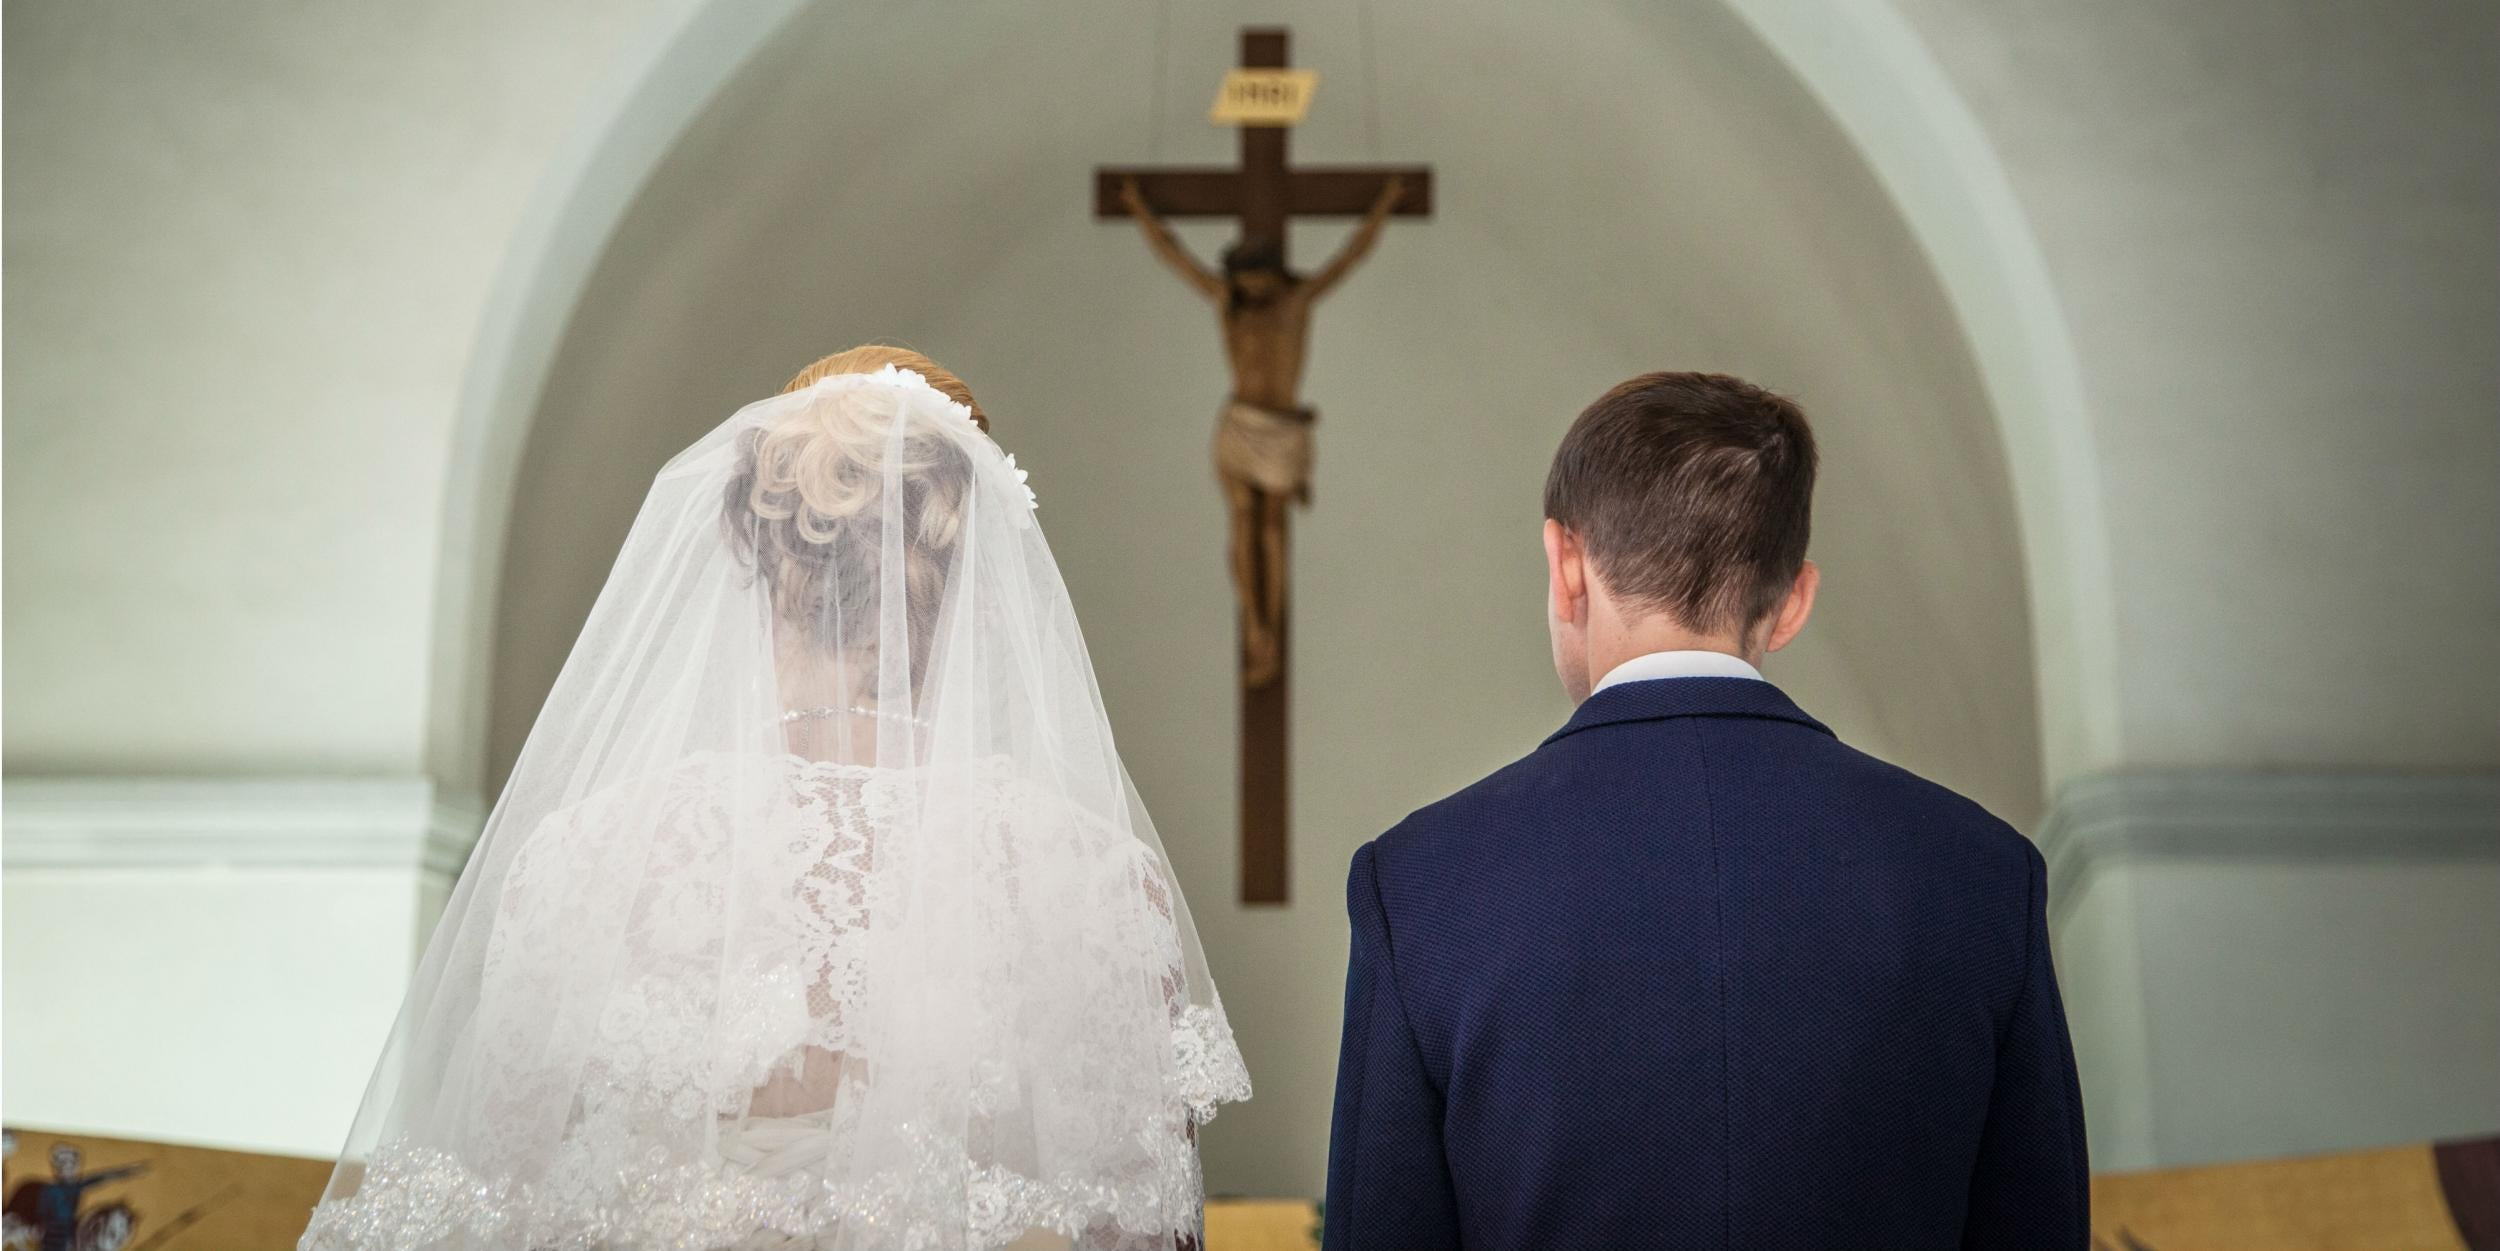 Groom's friend refuses to attend wedding because it's not in a church